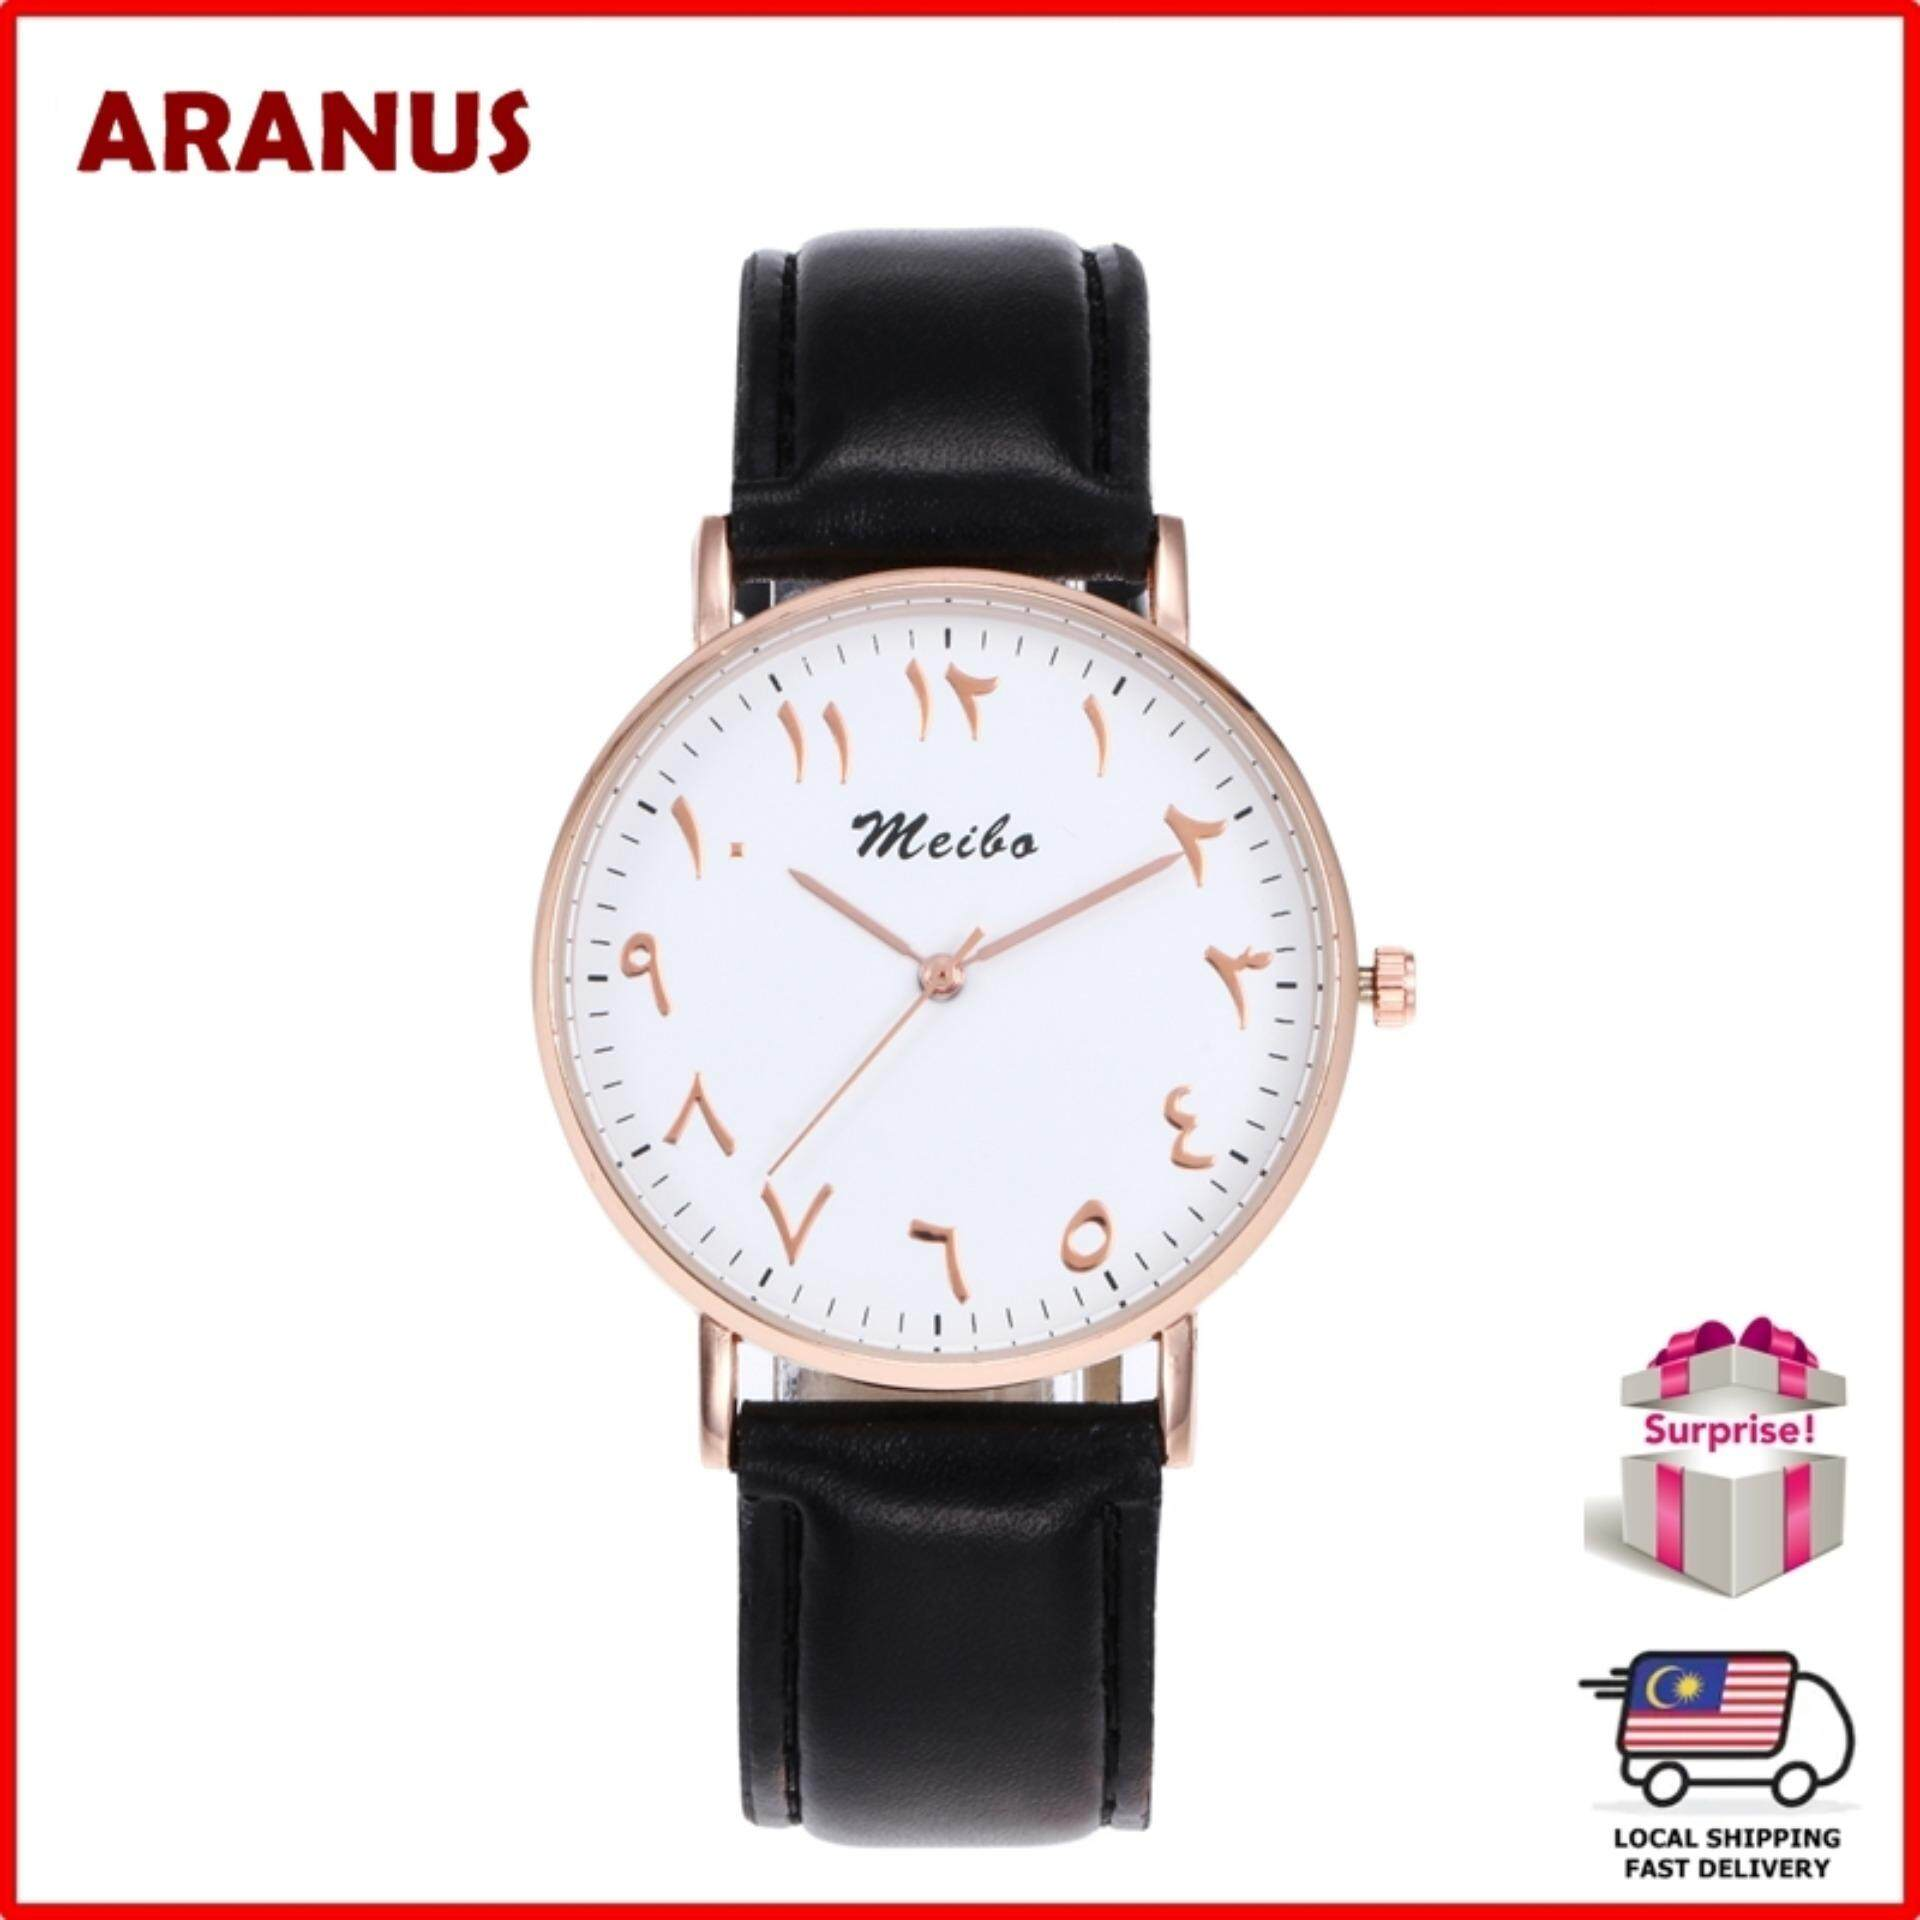 ARANUS Arabic Numbers Men Women Fashion Casual Leather Strap Band Analog Quartz Wrist Watch Jam Tangan Wanita Malaysia